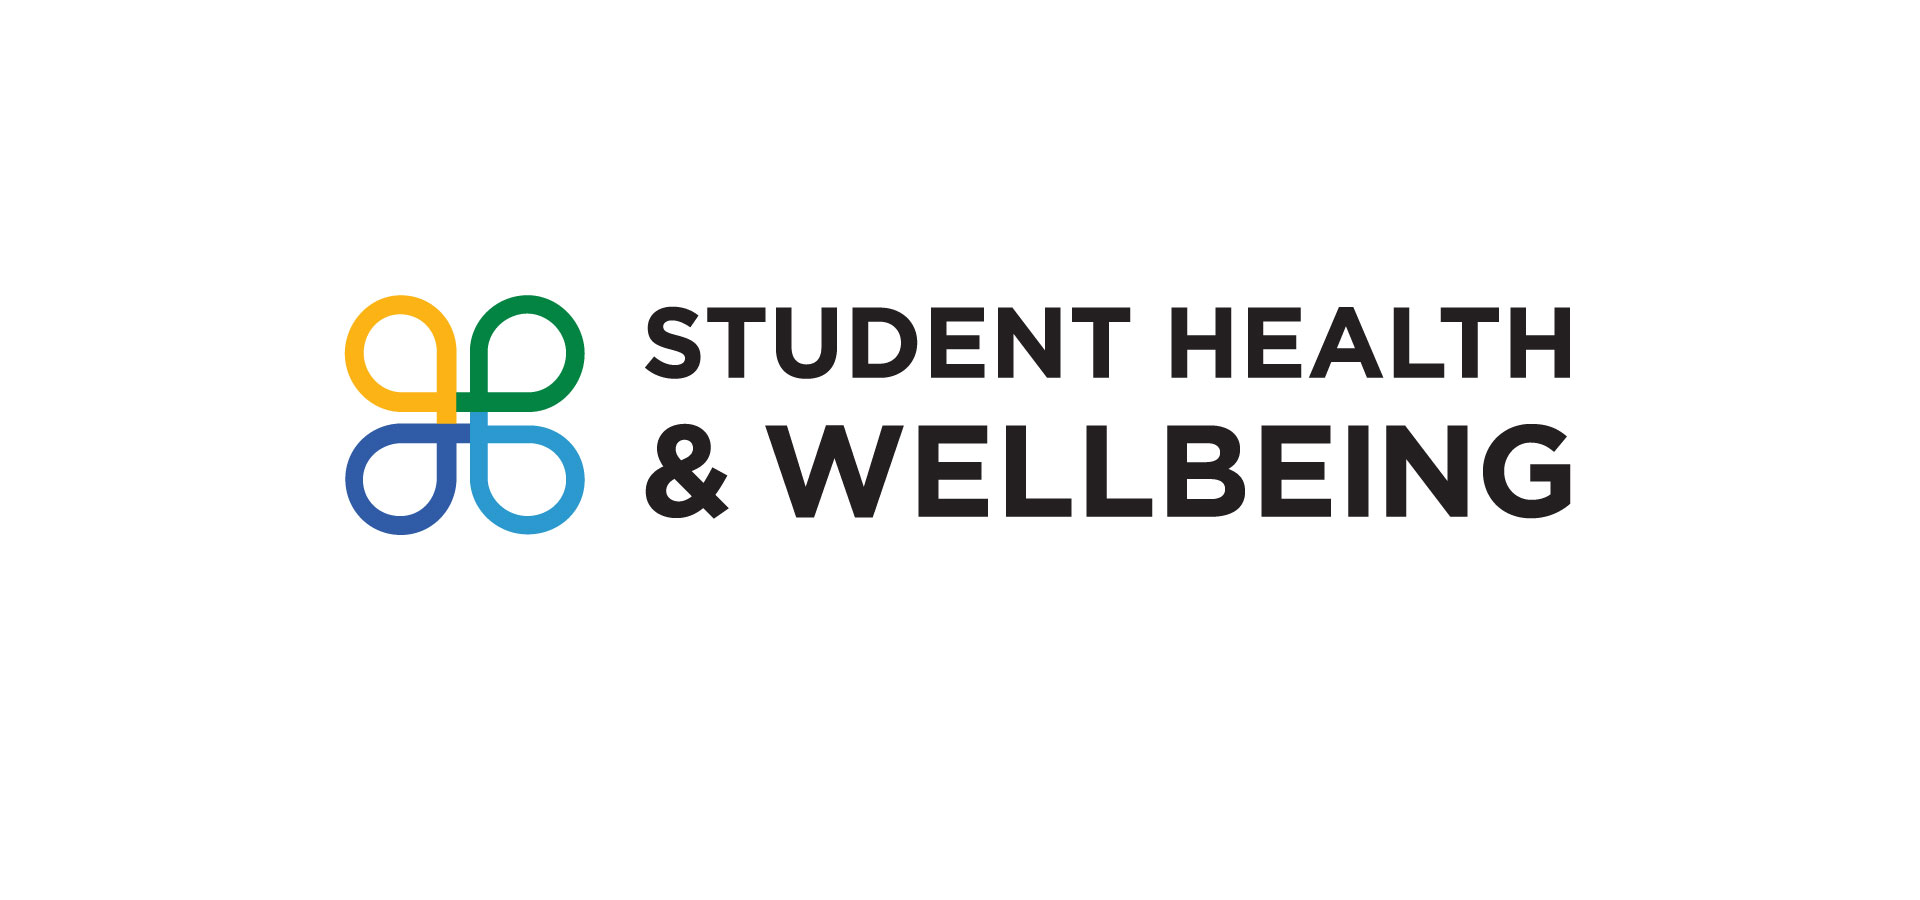 Student Health and Wellbeing